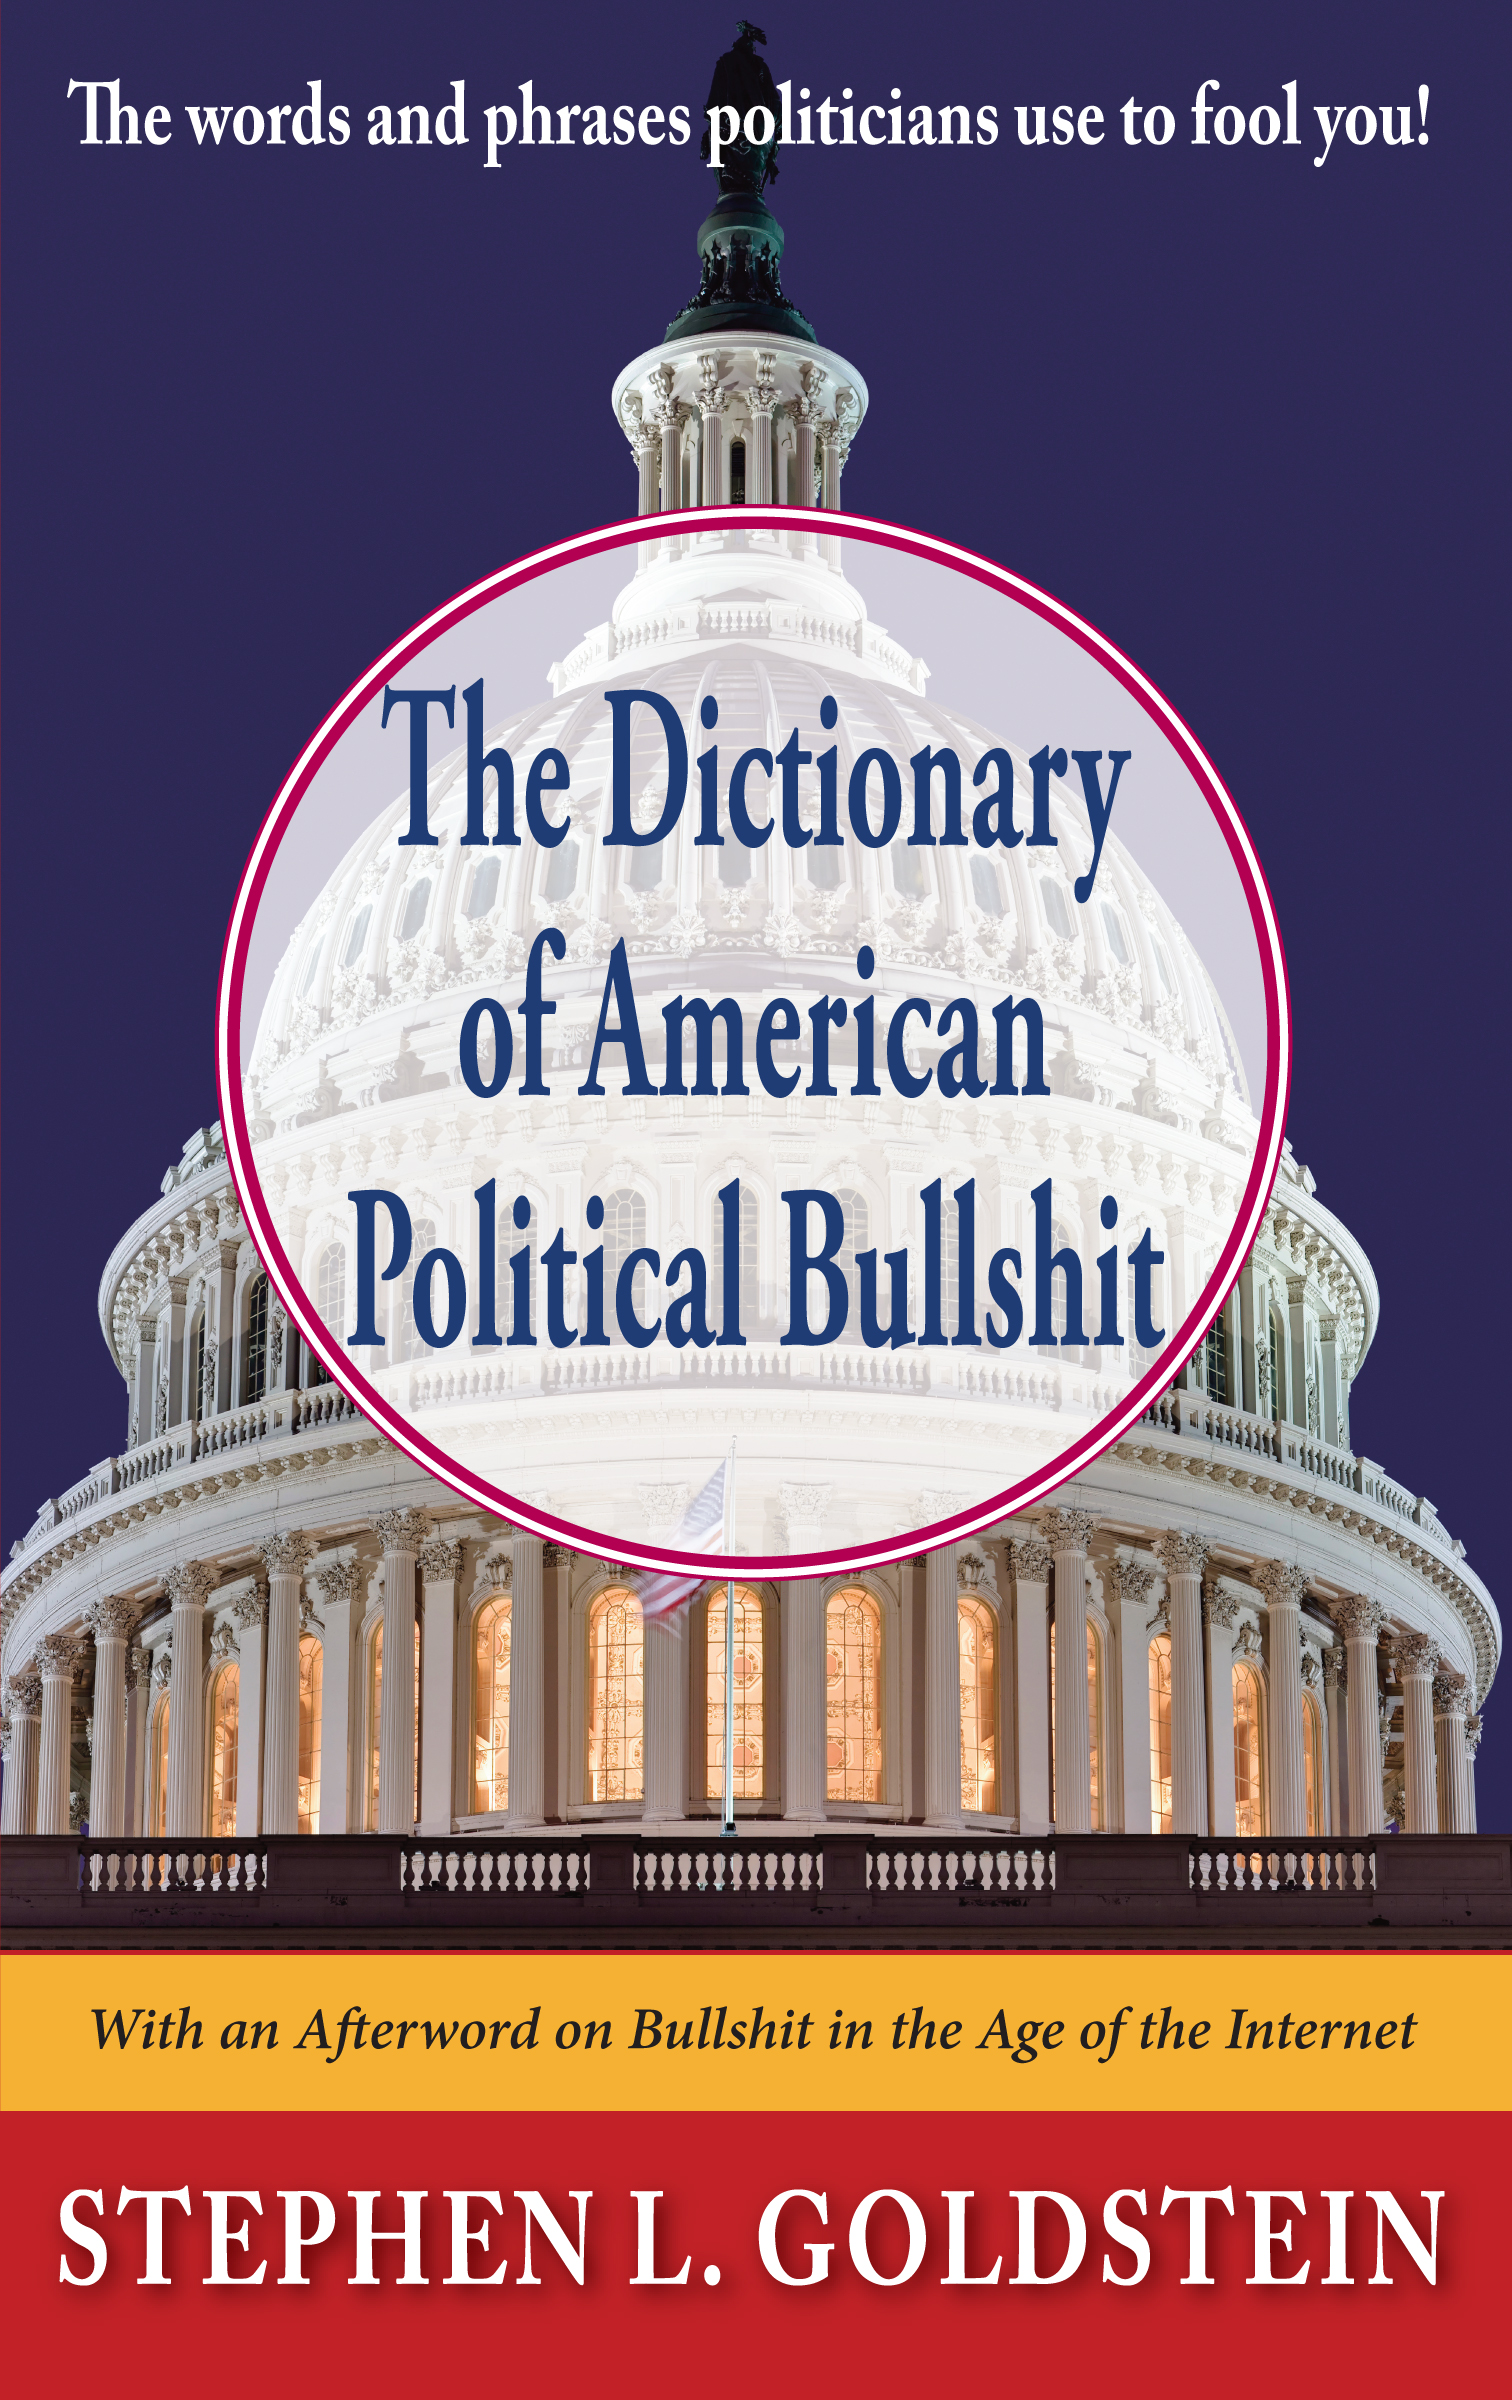 The Dictionary of American Political Bullshit